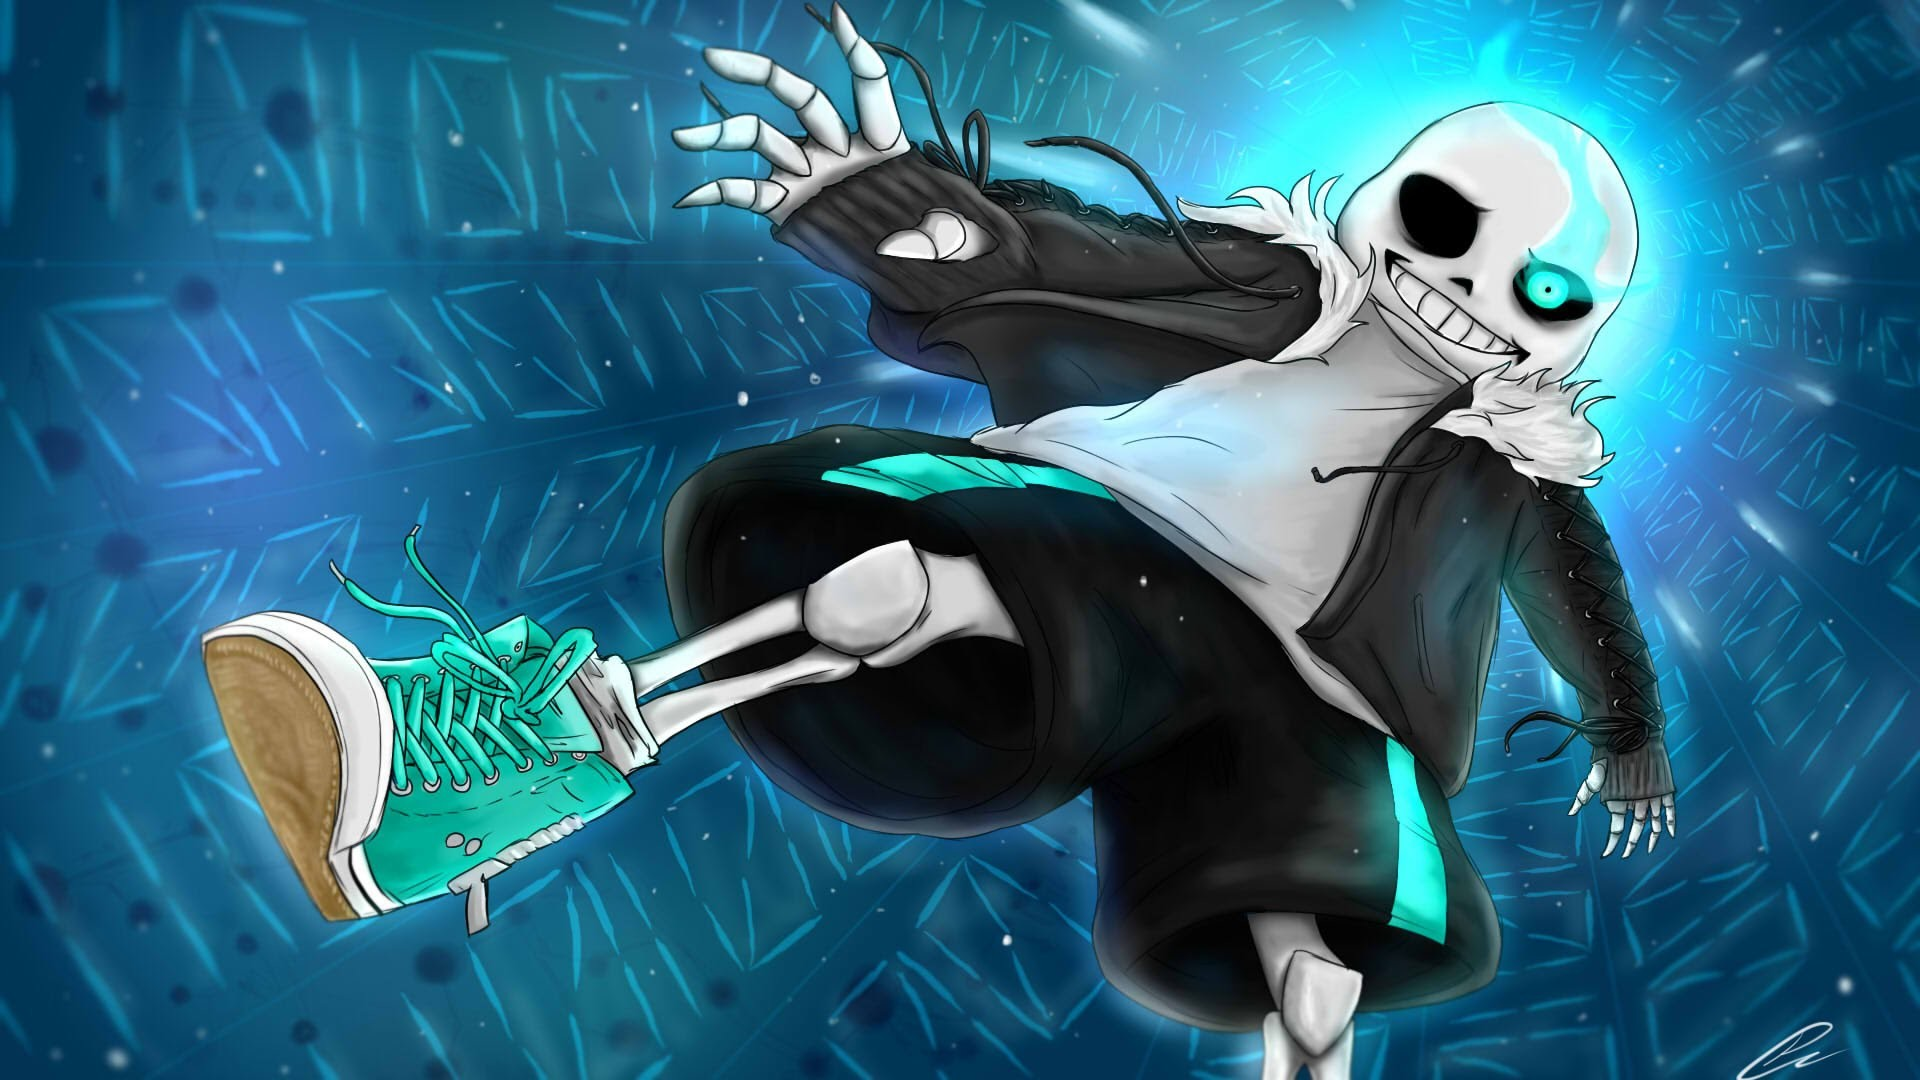 1920x1080 Undertale] SANS...? by AnthonyBlender on DeviantArt